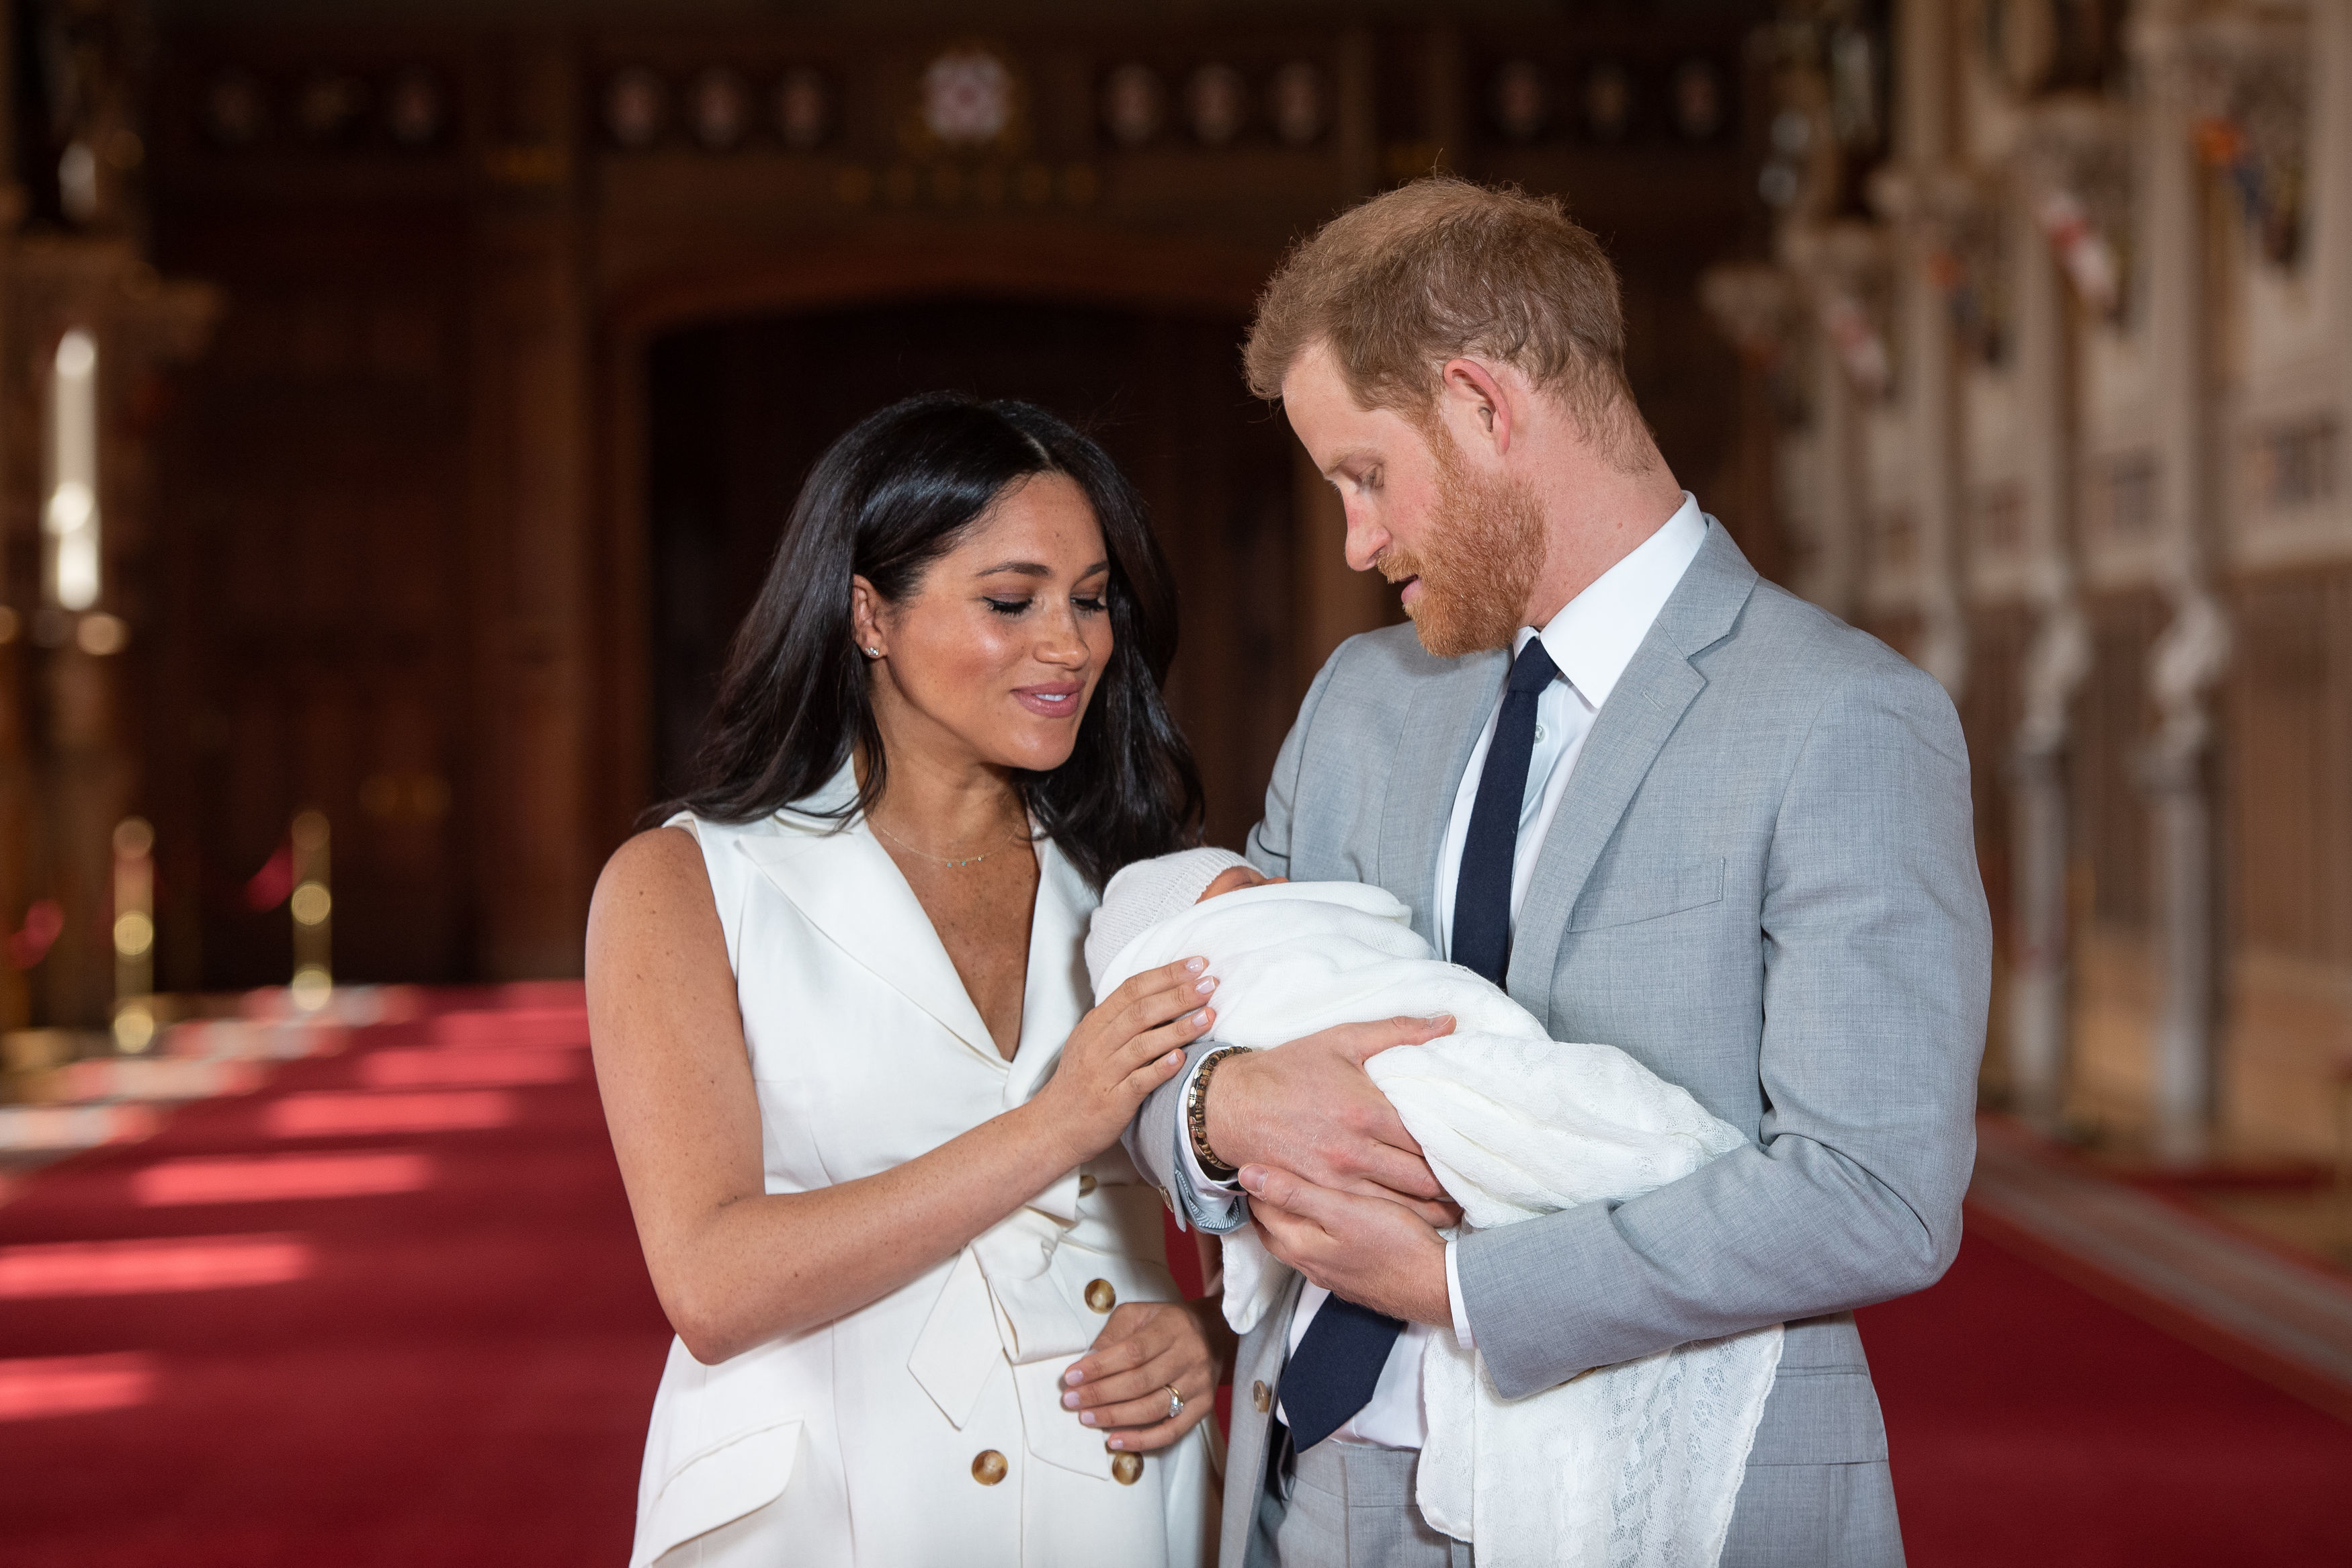 Editorial use only.Mandatory Credit: Photo by Domic Lipinski/PA/EPA-EFE/Shutterstock (10231477p)Prince Harry and Meghan Duchess of Sussex pose together with their newborn son Archie Harrison Mountbatten-Windsor in WindsorPrince Harry and Meghan Duchess of Sussex new baby photocall, Windsor Castle, UK - 08 May 2019